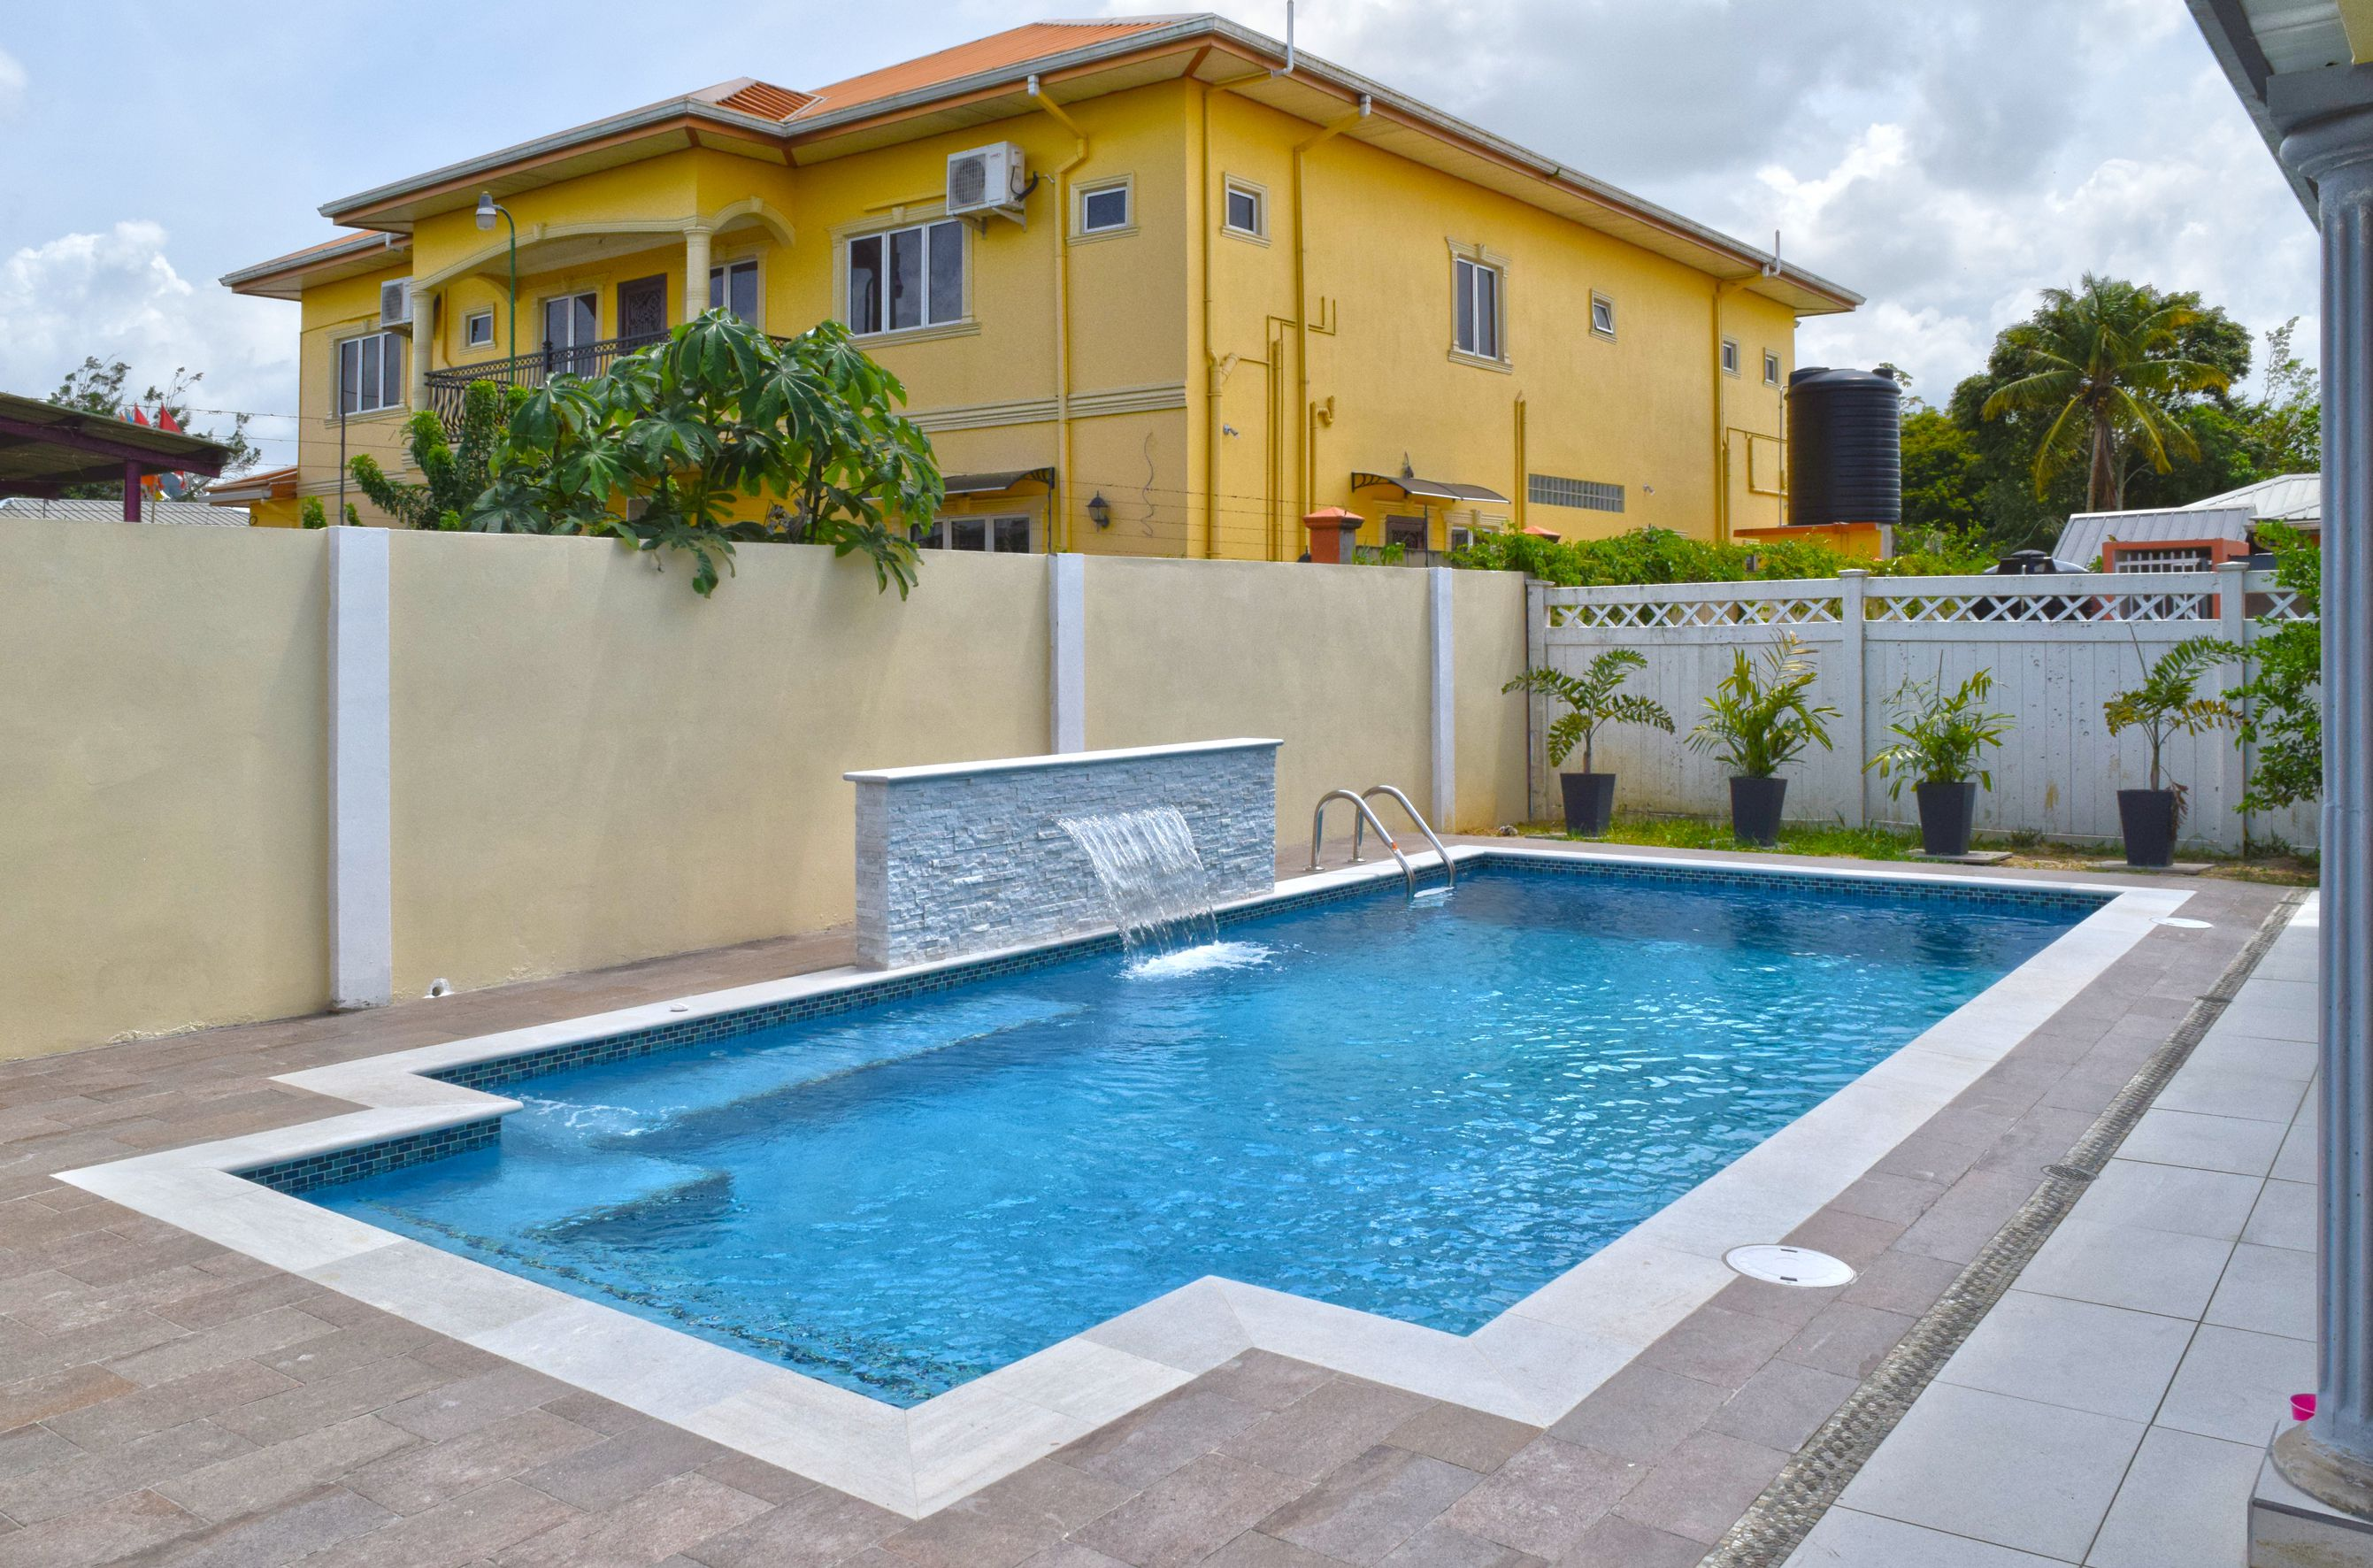 Swimming pool finishes Trinidad